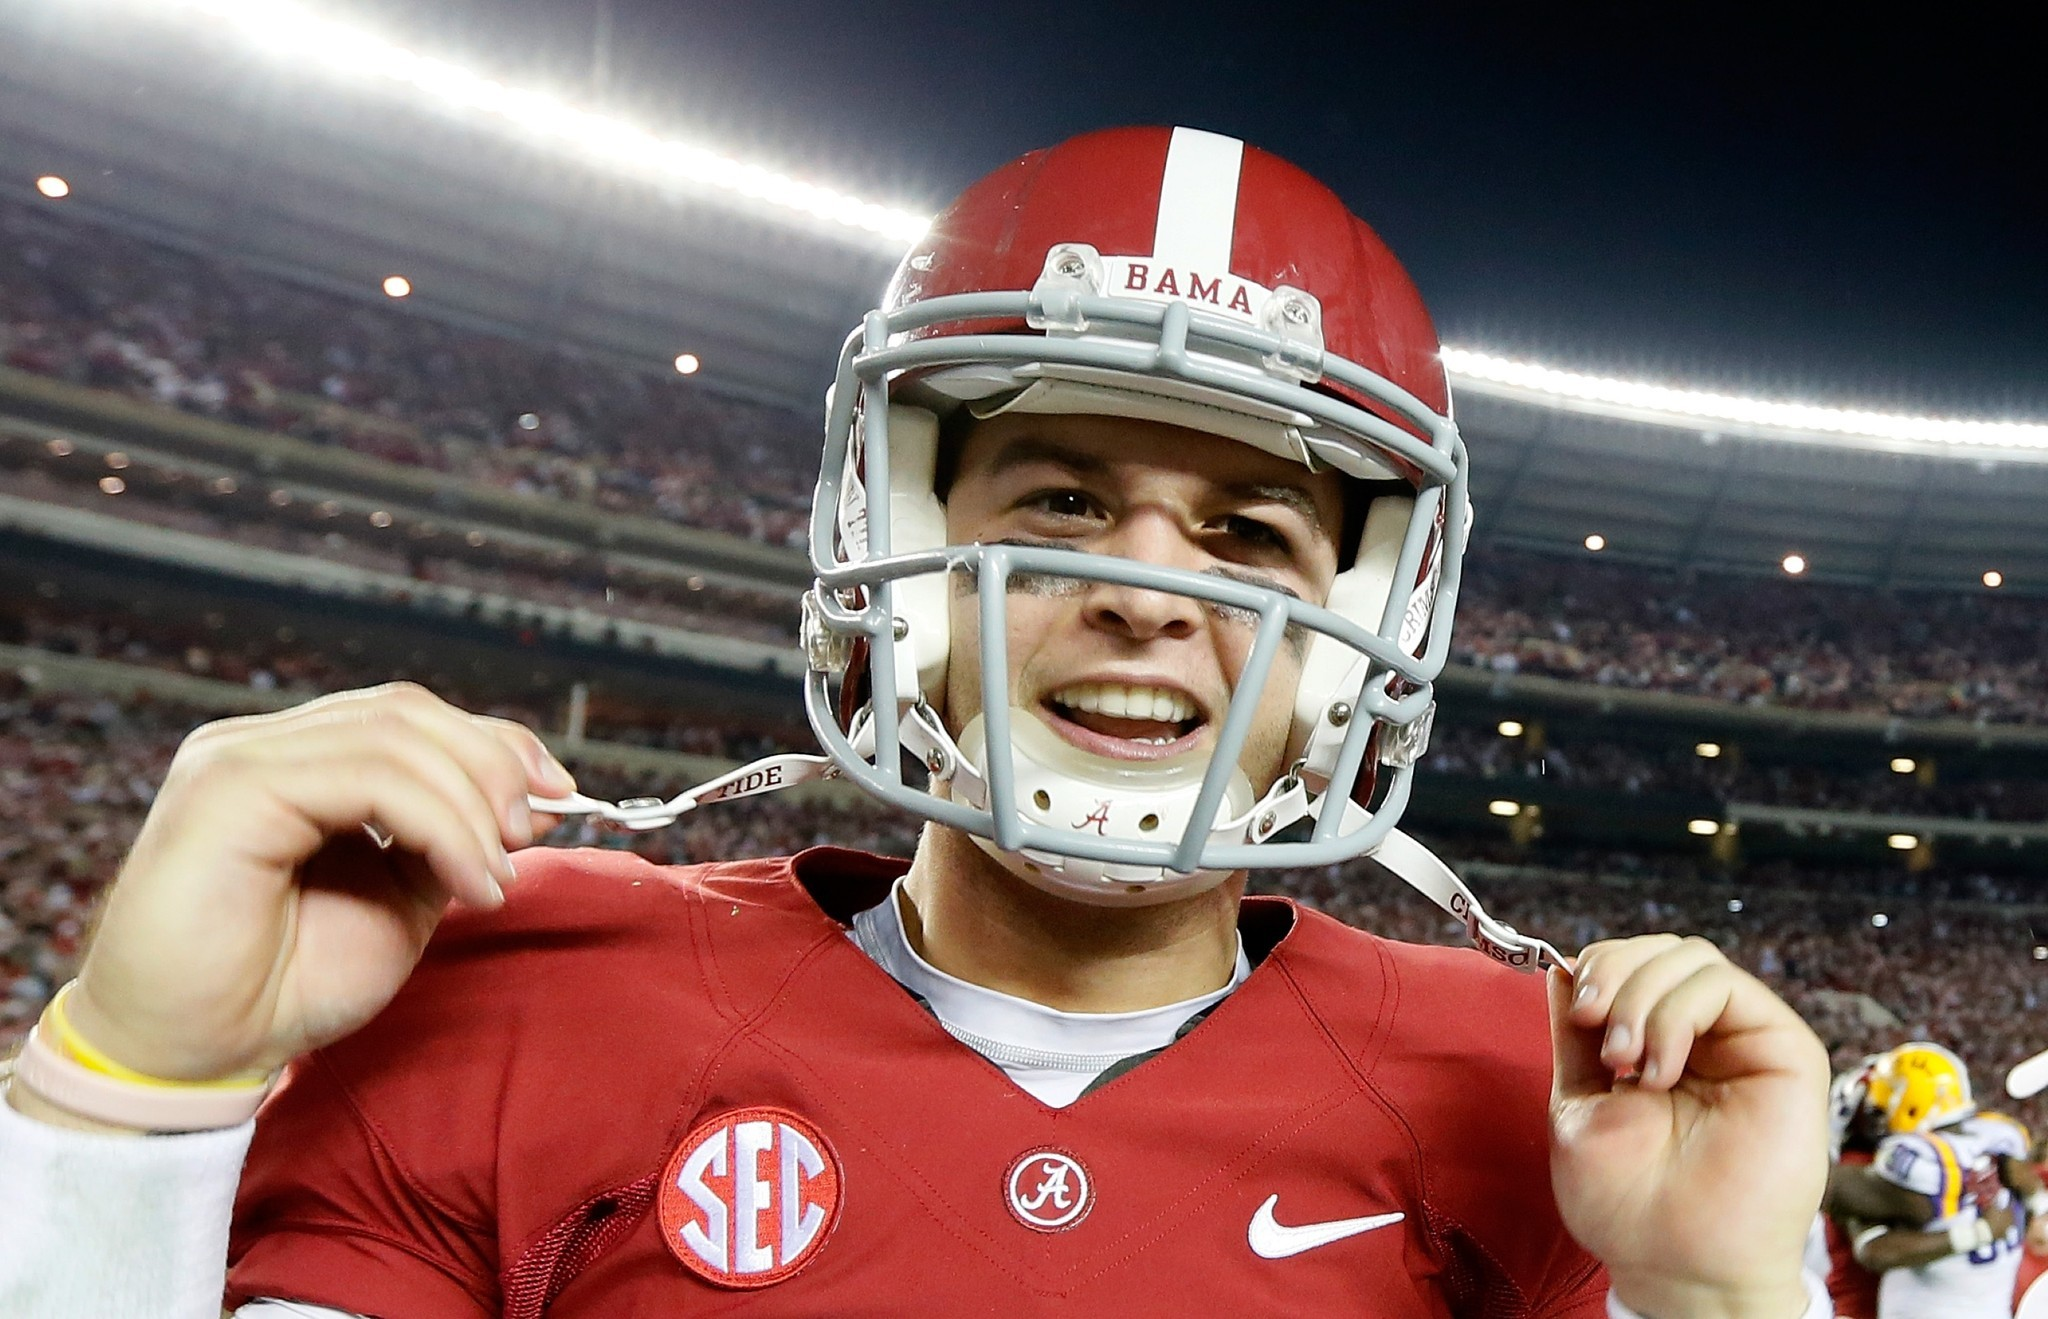 AJ McCarron says he dropped in NFL draft for being 'too honest'